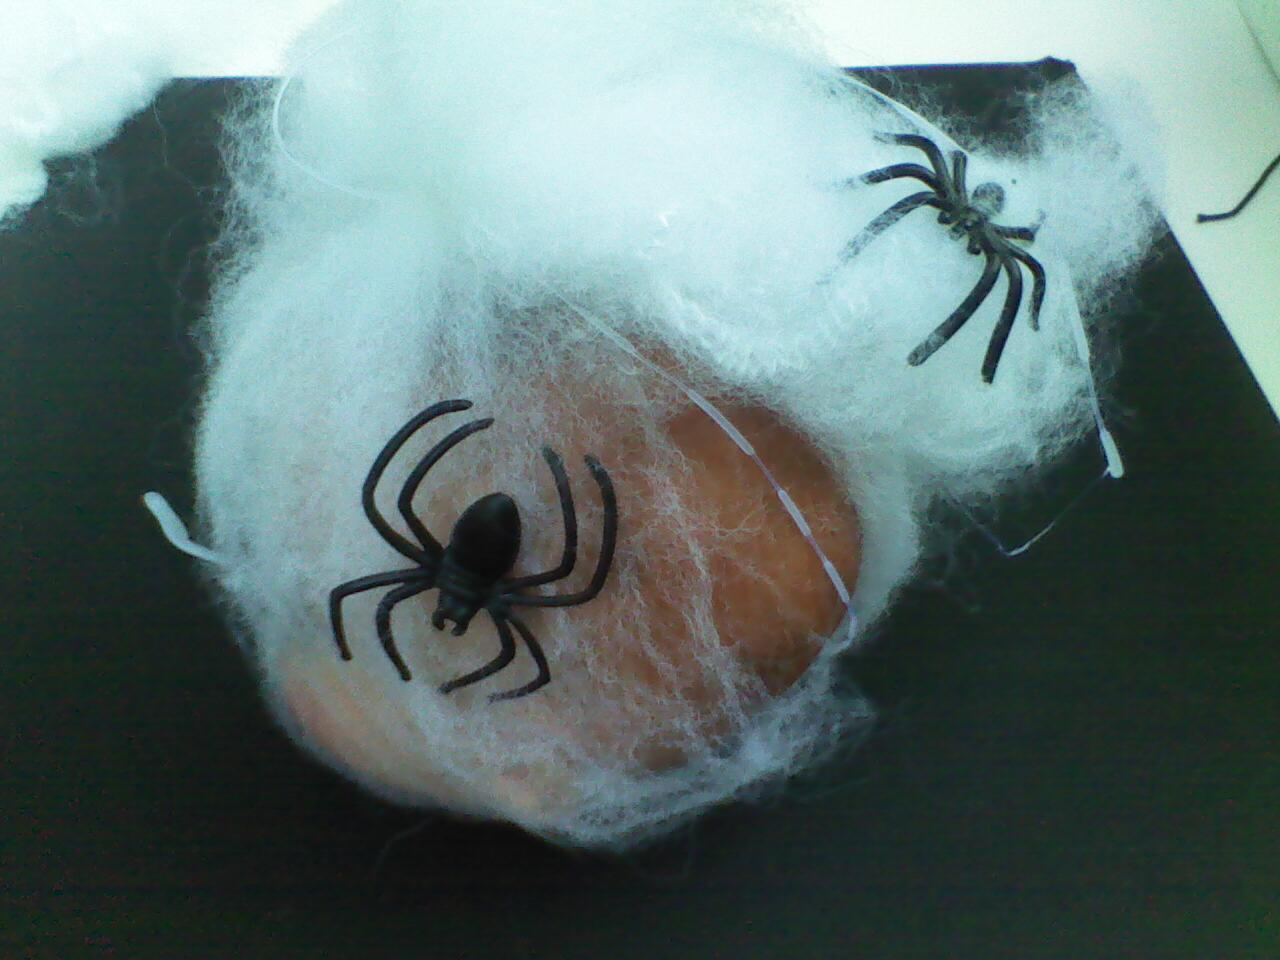 WebHeads! Create Spiderweb-Trapped Doll Heads forHalloween